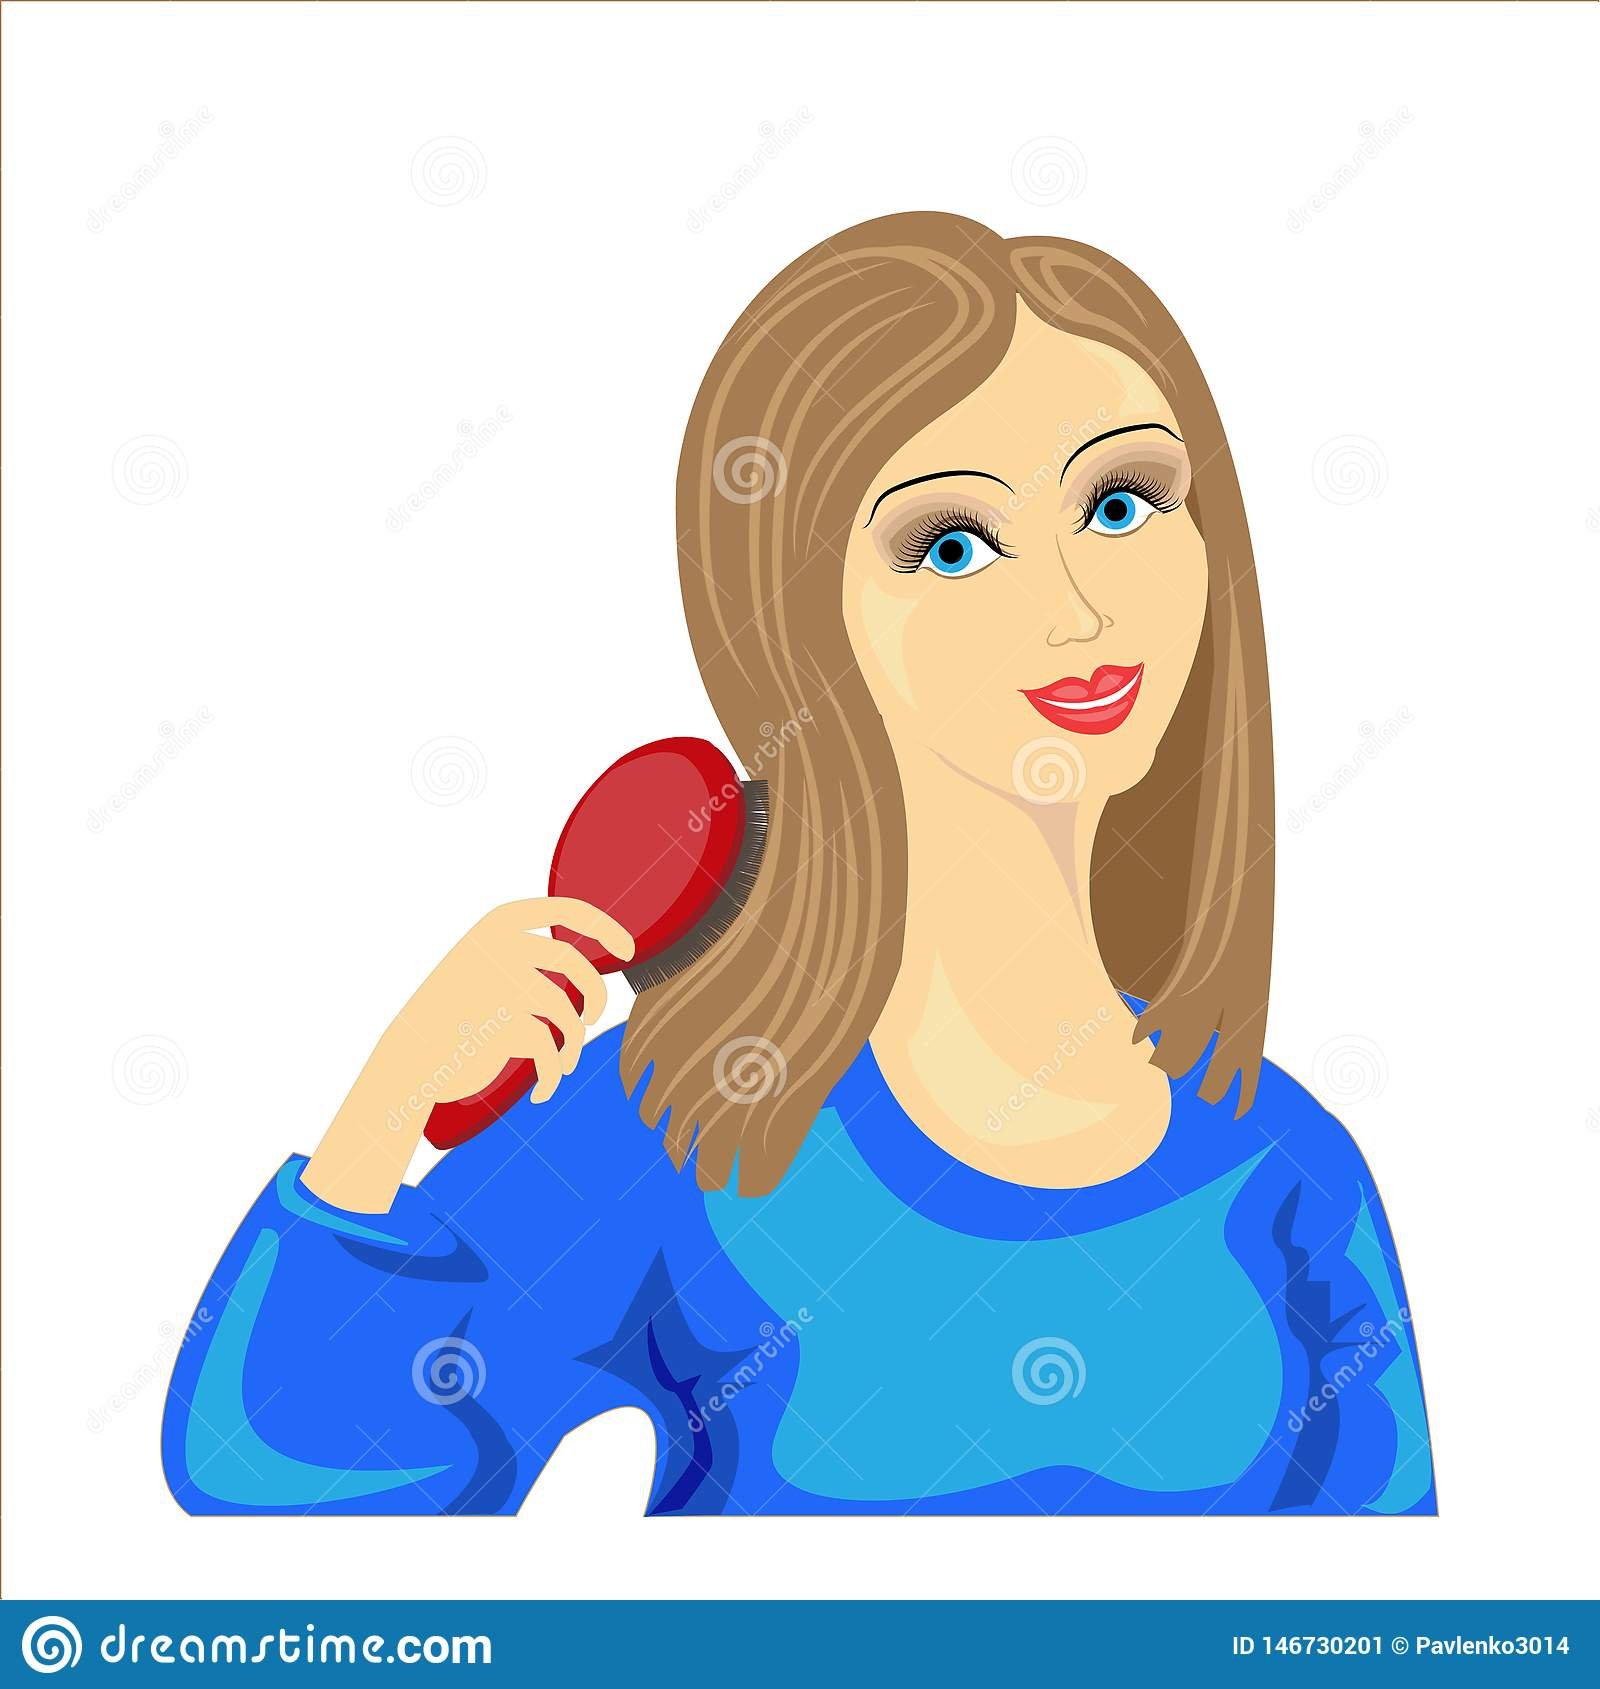 Picture of a beautiful young lady. A sweet, cheerful girl in a blue sweater combs her hair. They are even and healthy. Vector